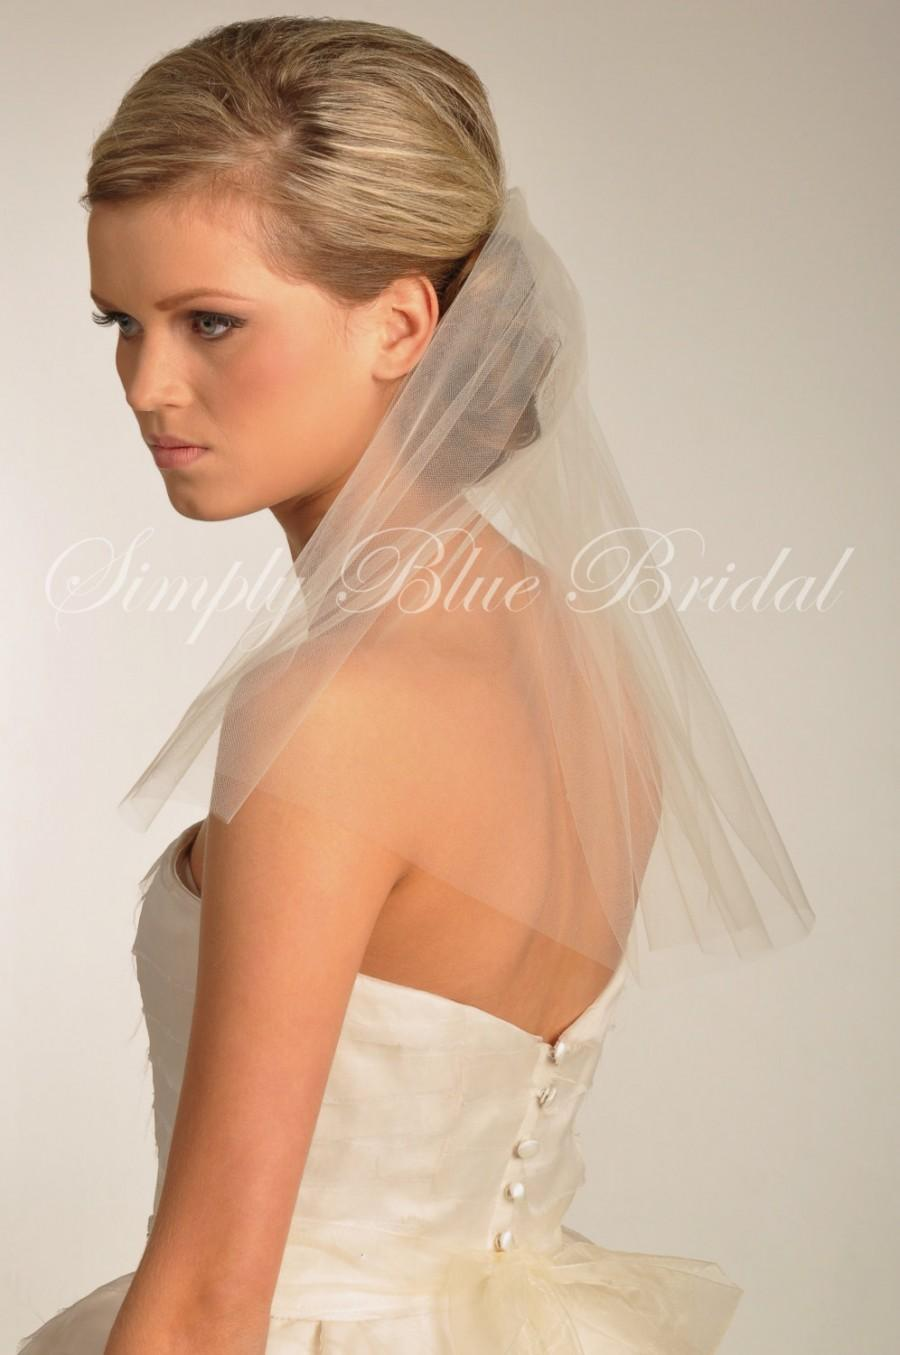 Mariage - Short Veil - Soft Shoulder Length Veil with Raw Cut Edge in IVORY - READY to SHIP